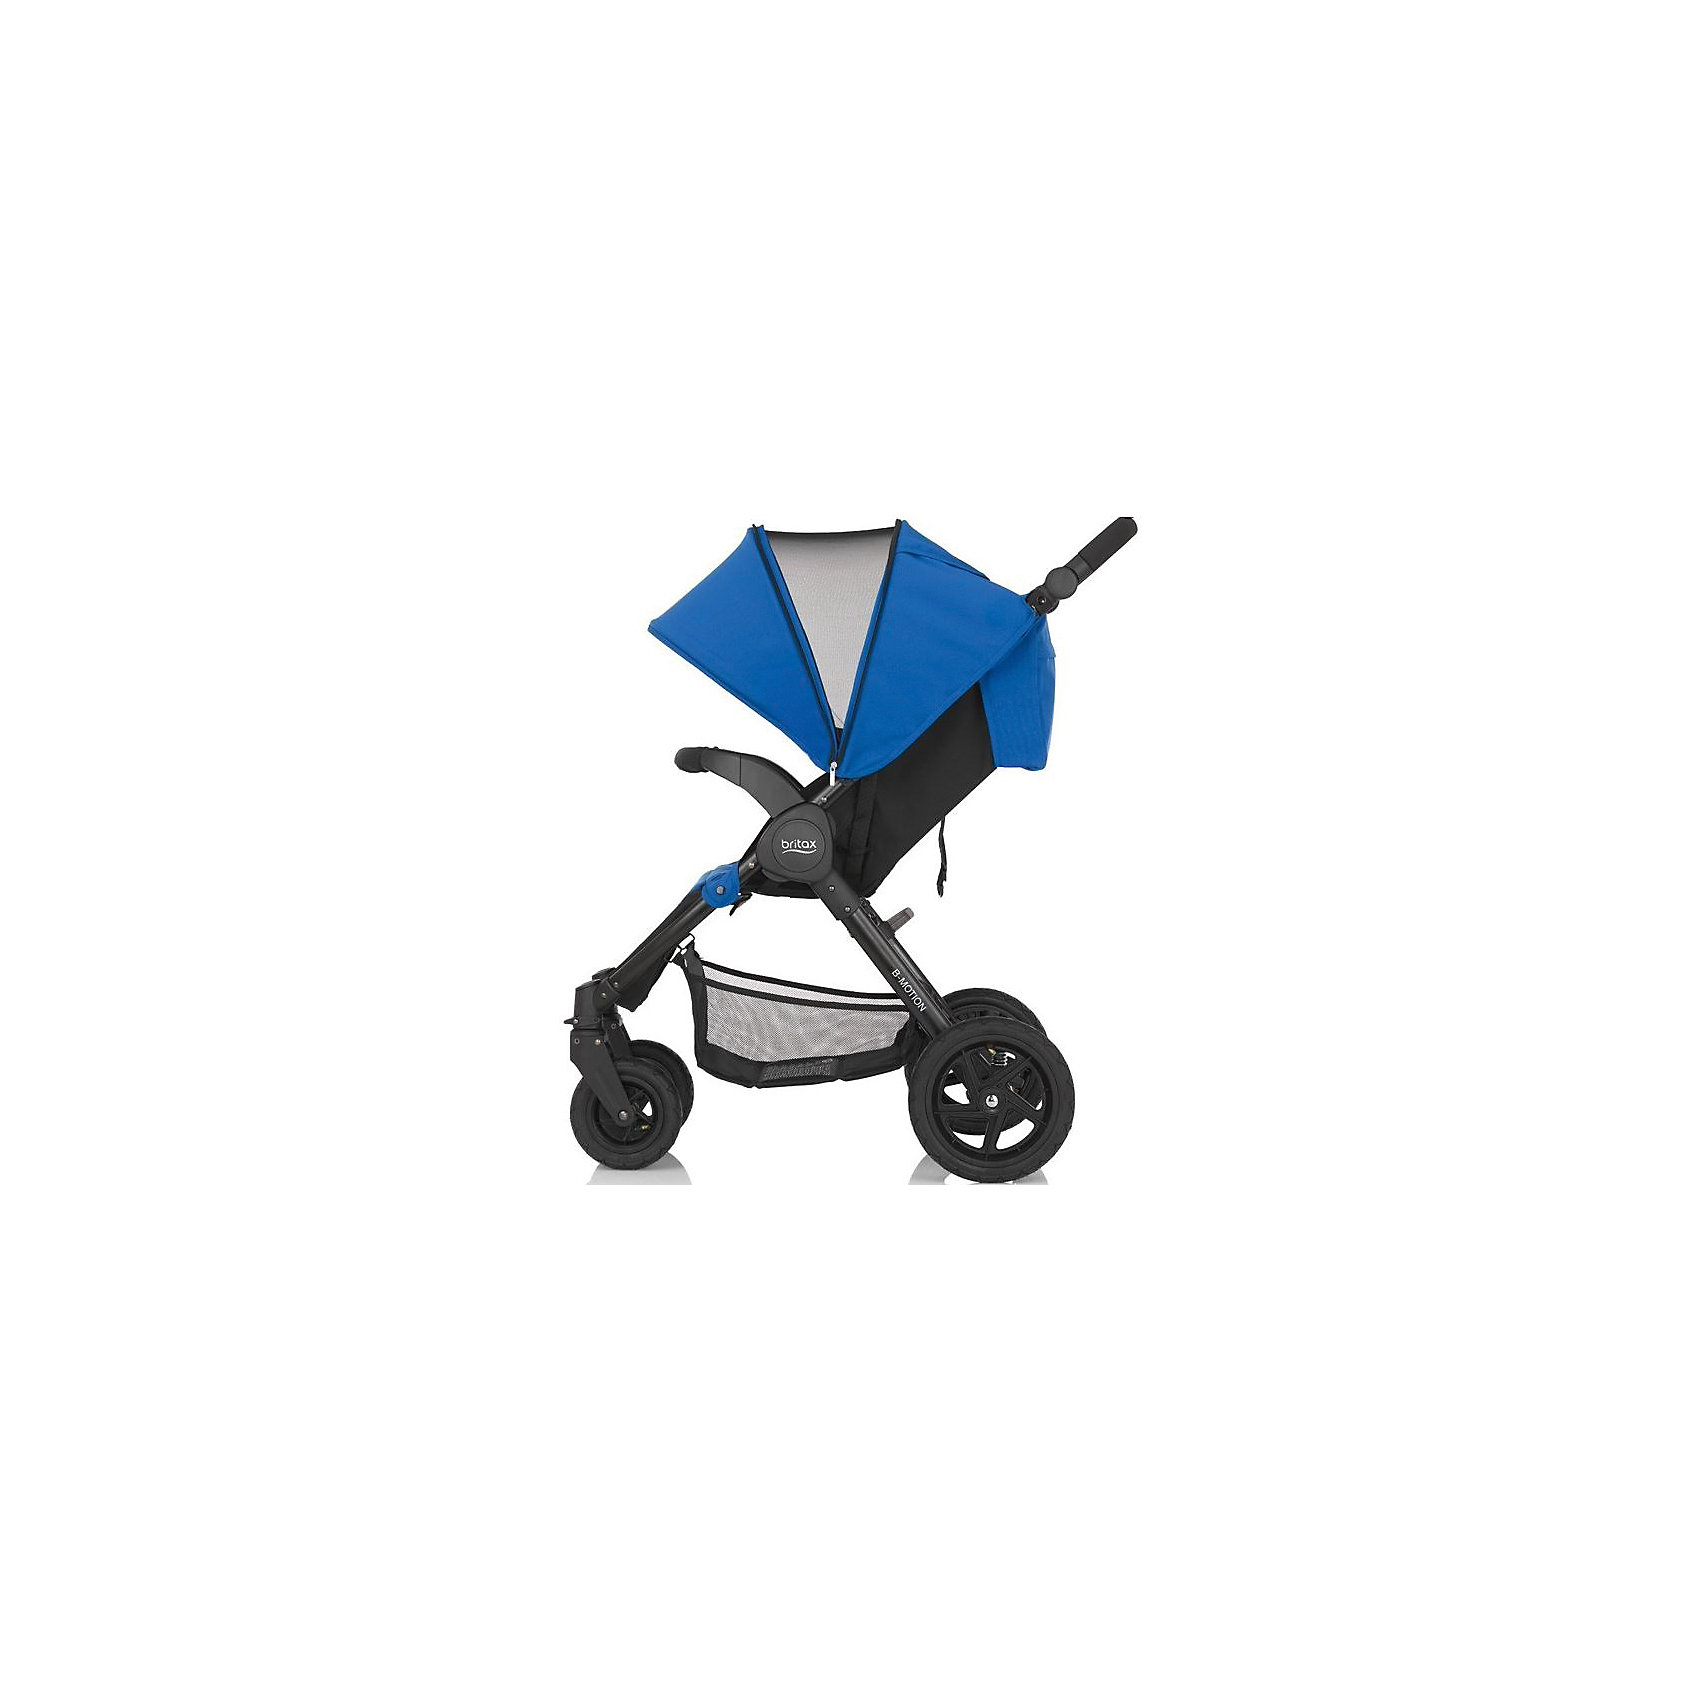 ����������� ������� B-Motion 4, Britax, Ocean Blue